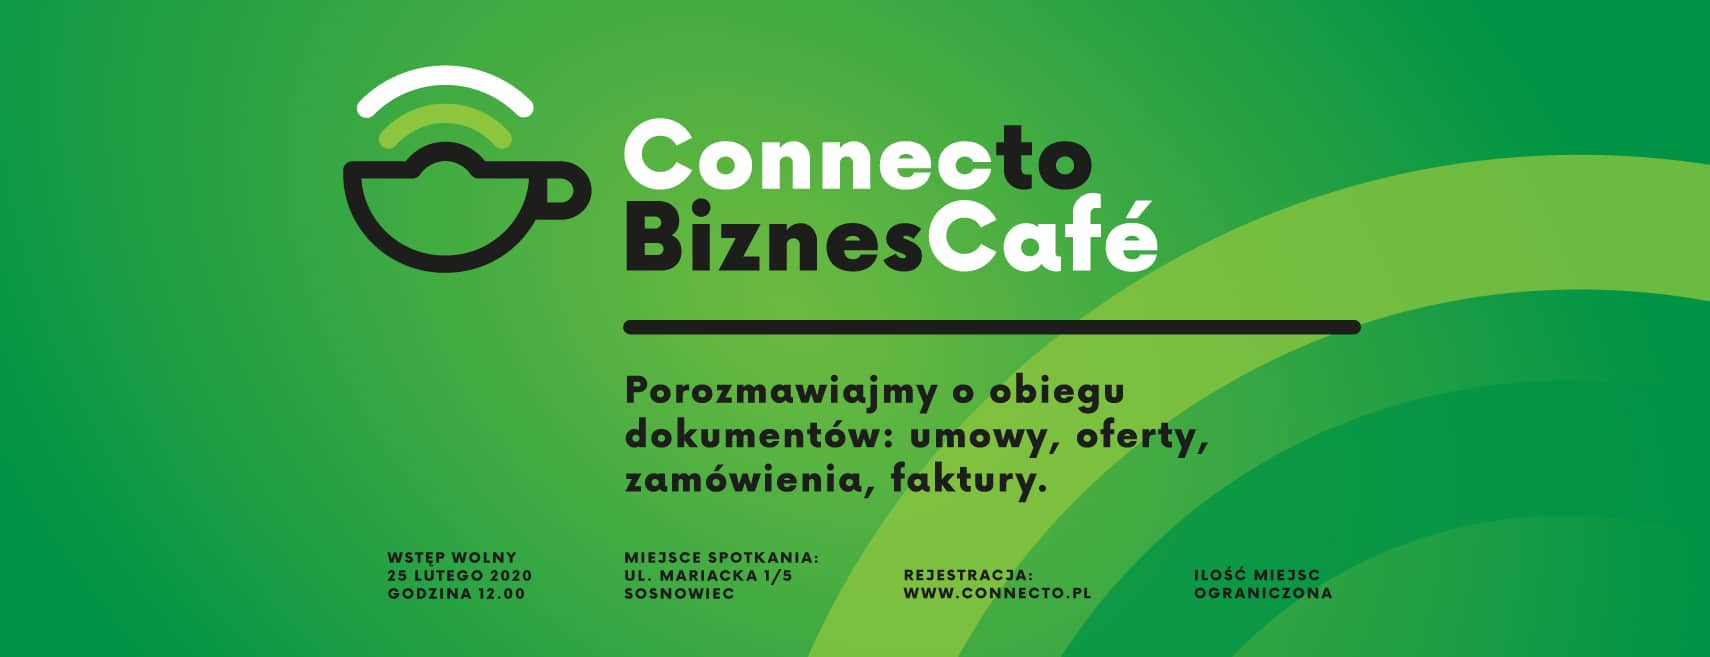 Connecto biznes cafe luty